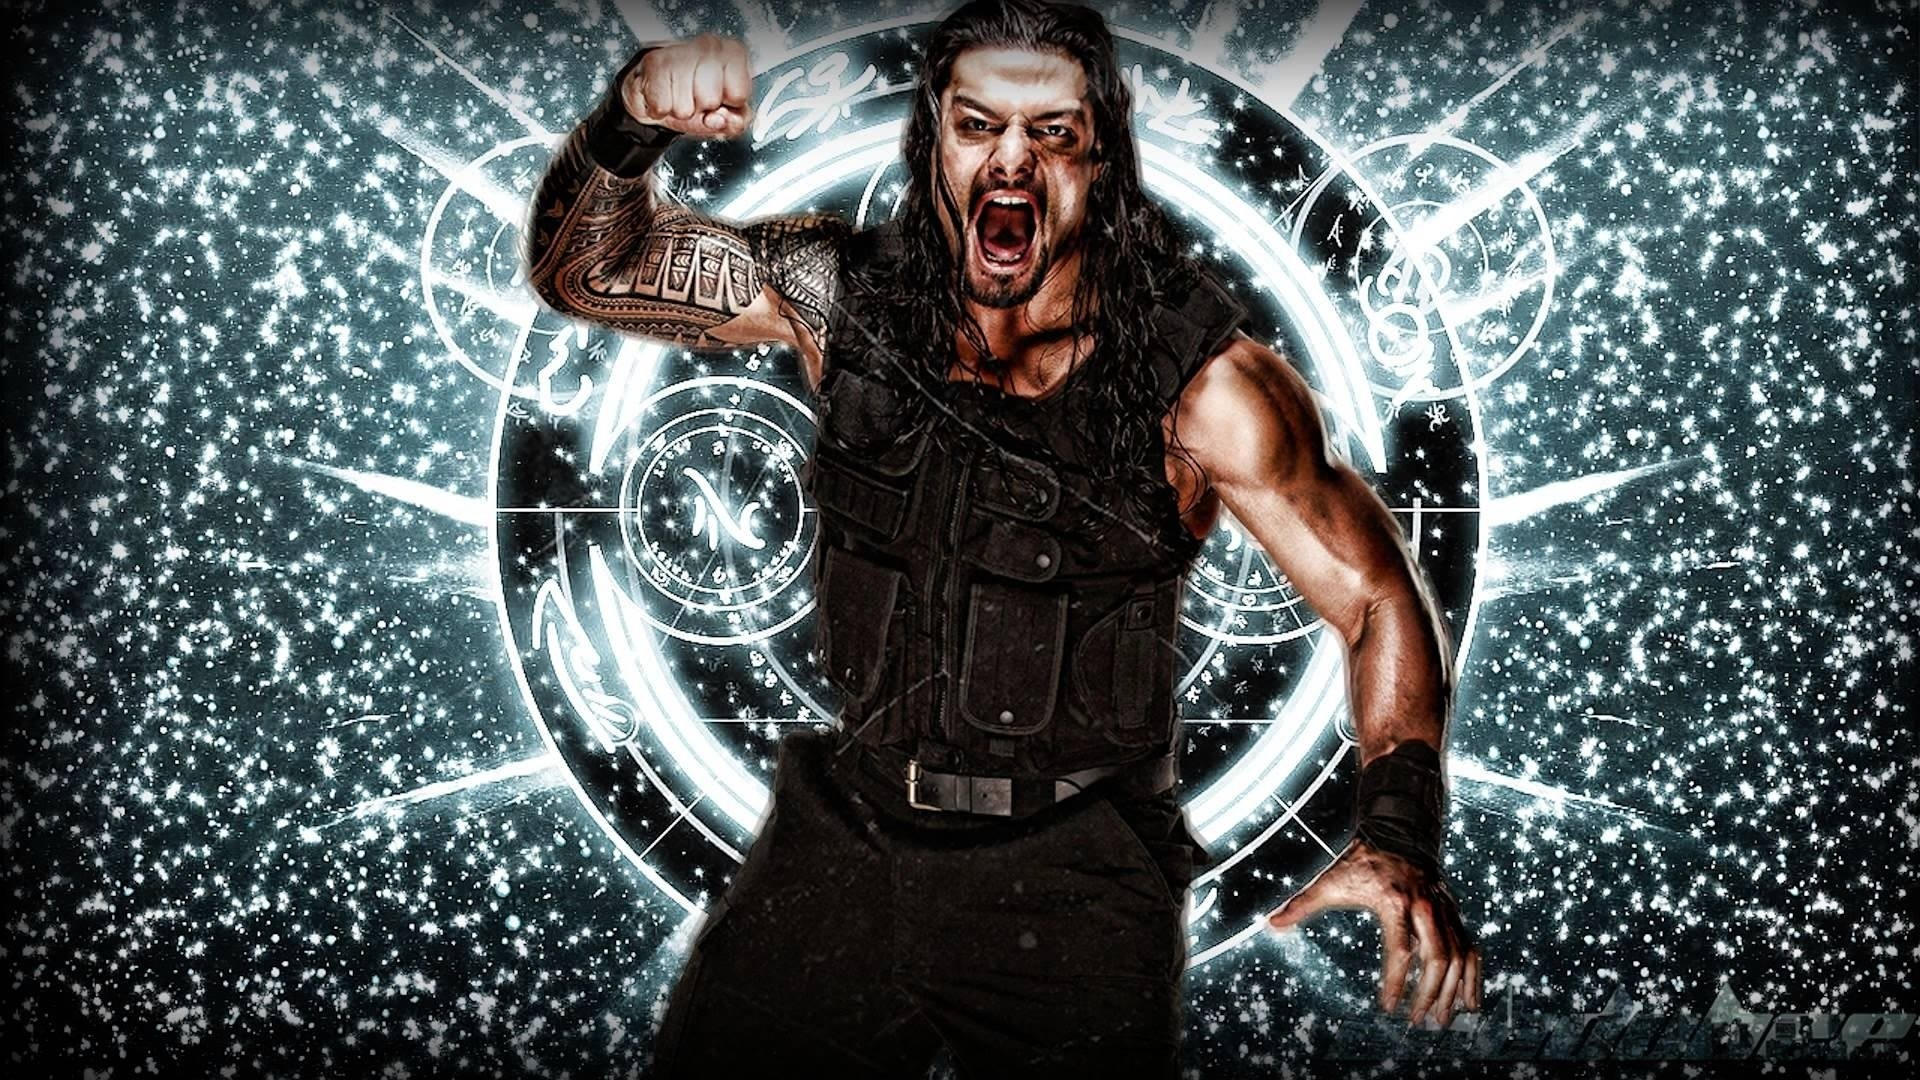 Res: 1920x1080, HD Wallpaper   Background Image ID:689576.  Sports WWE